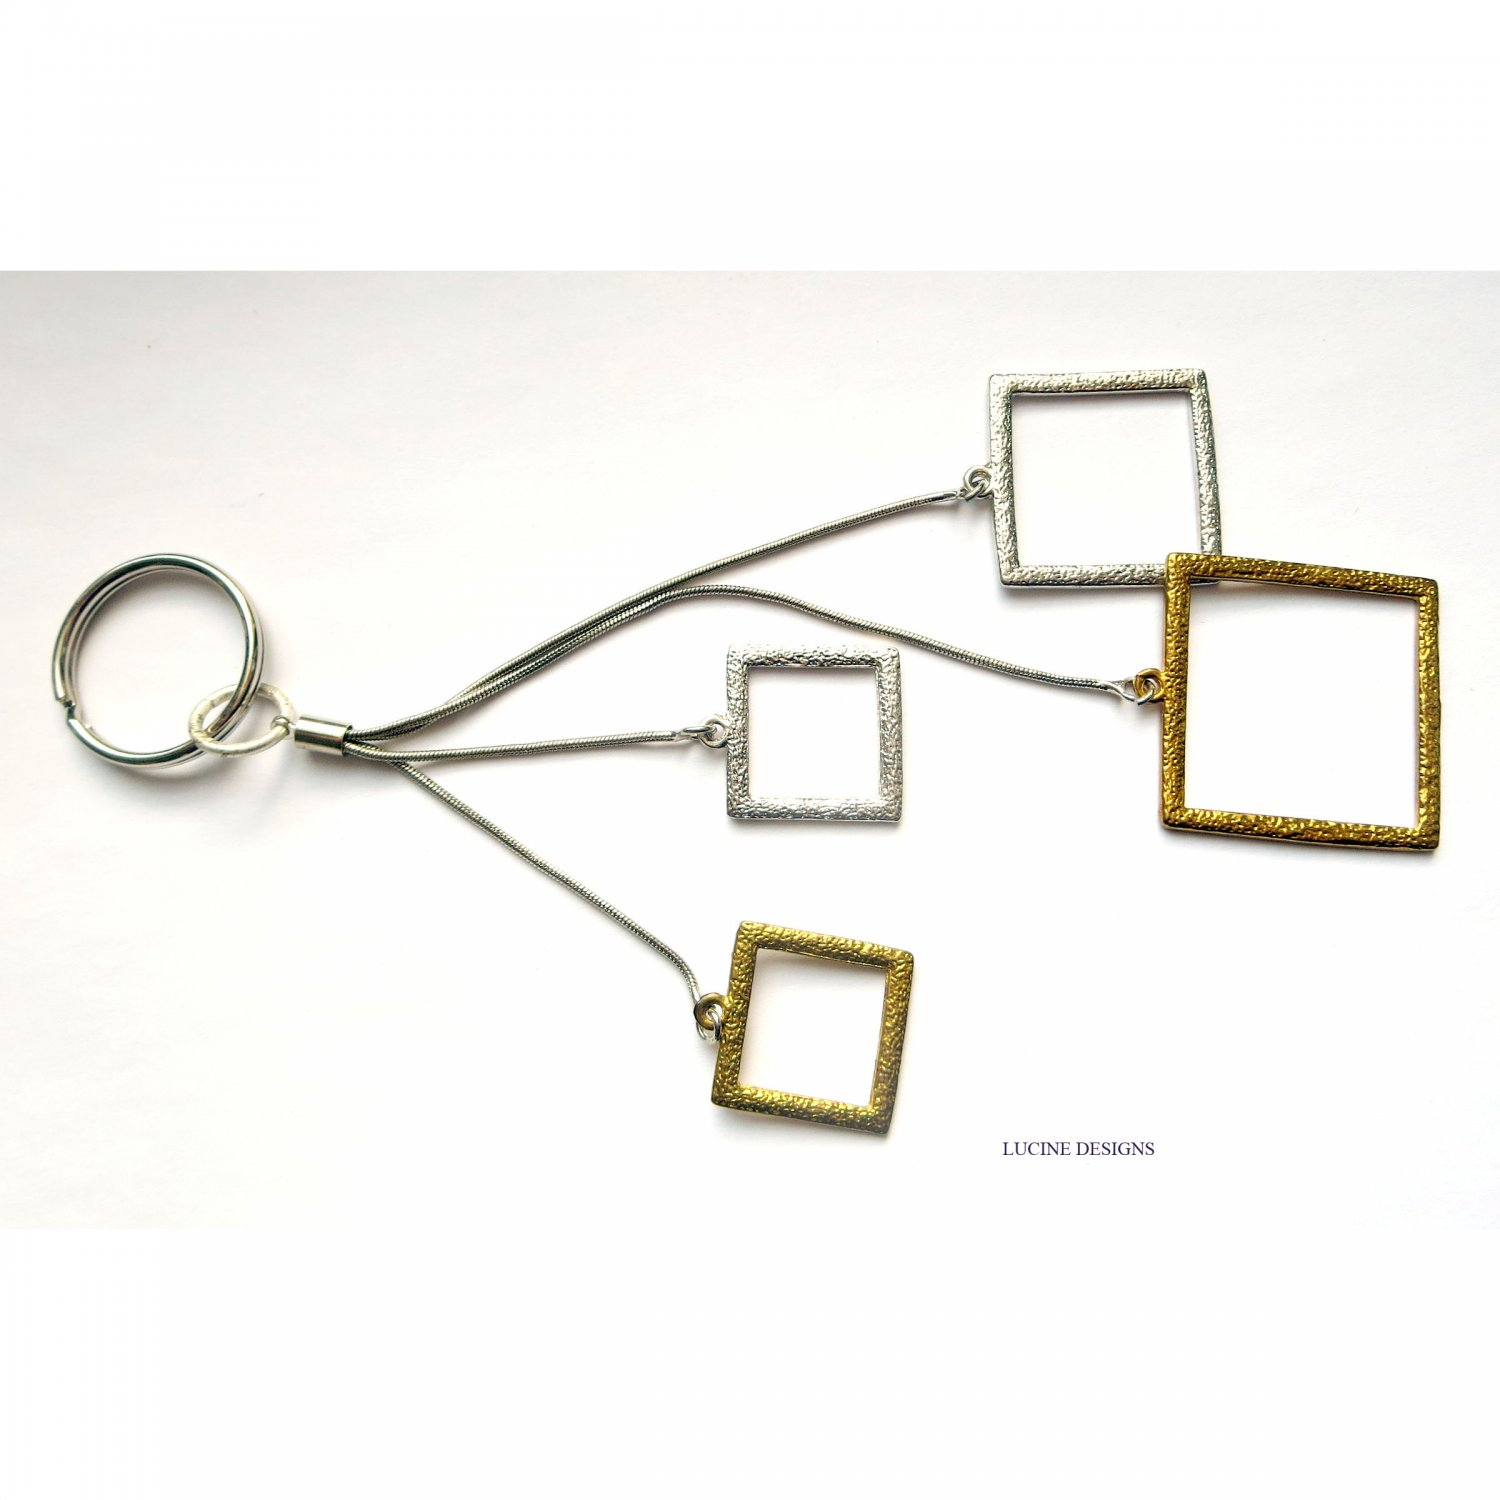 OOAK fashion keychain accessory in gold and silver squares geometric